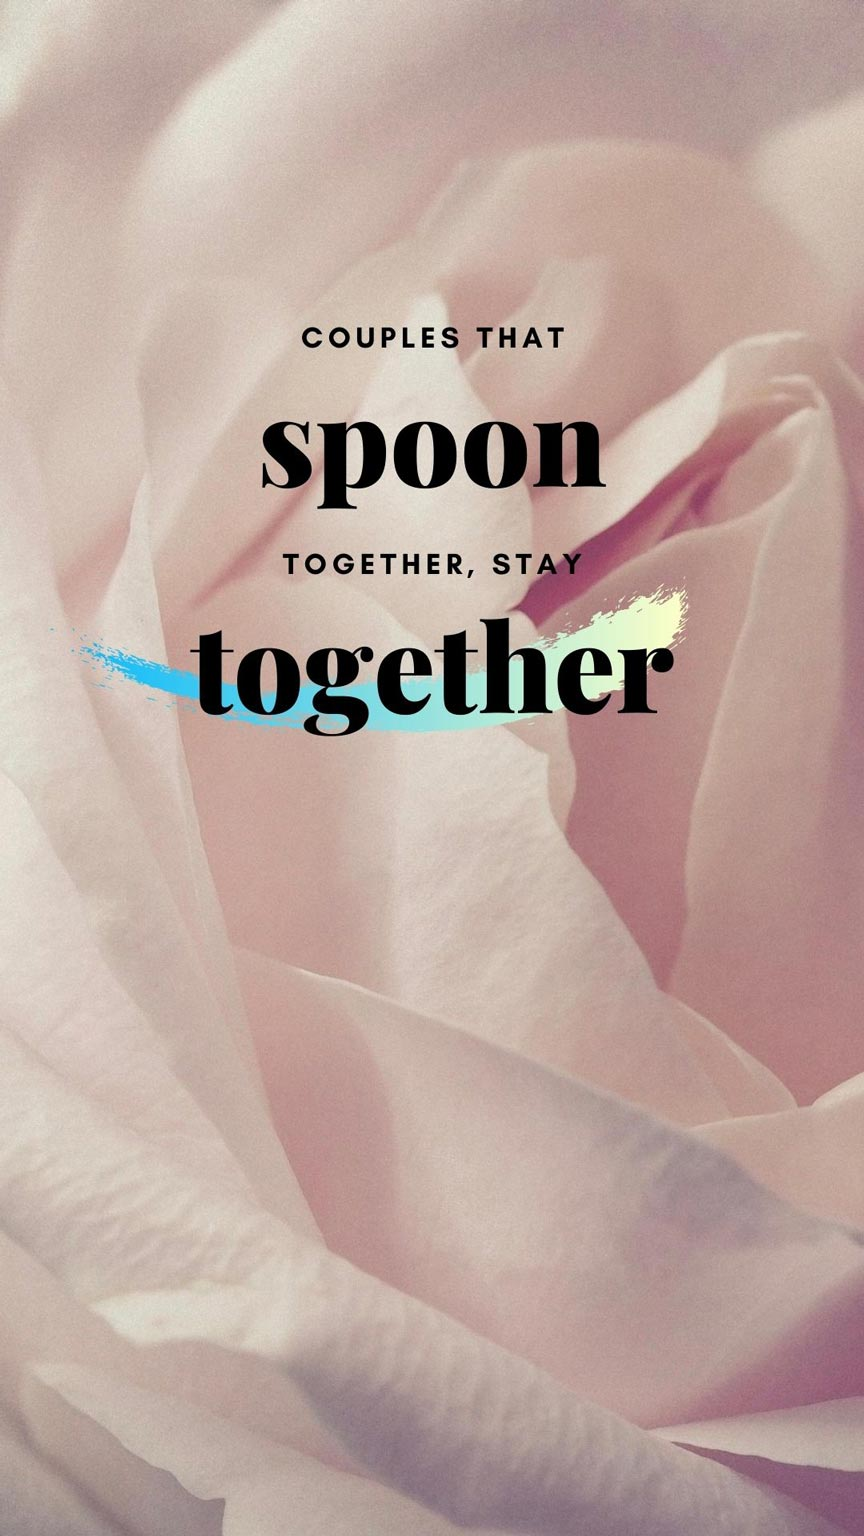 Couples-that-spoon-together,-stay-together